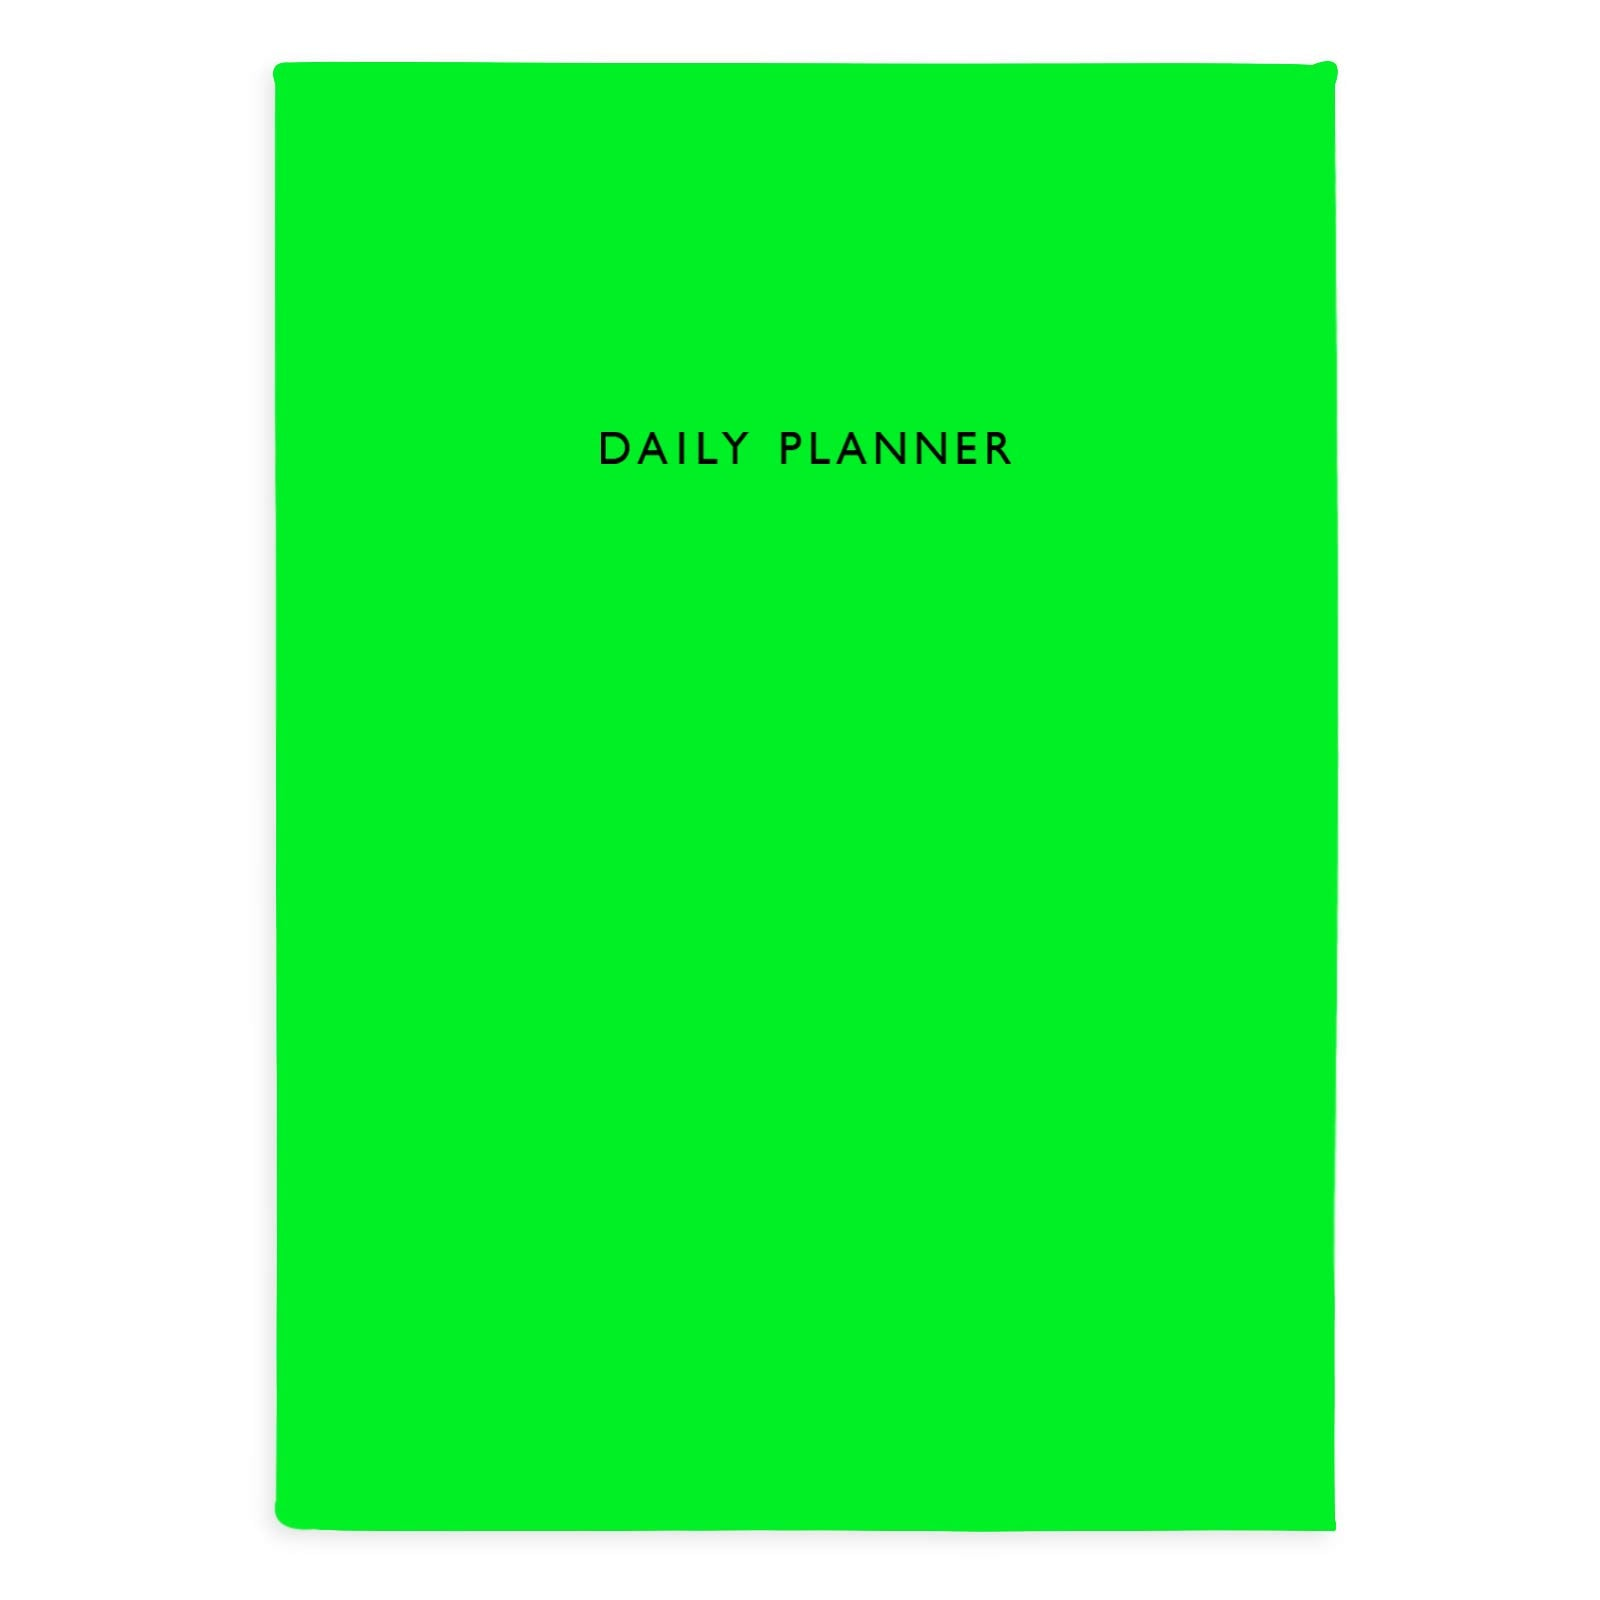 Neon Green Daily Planner